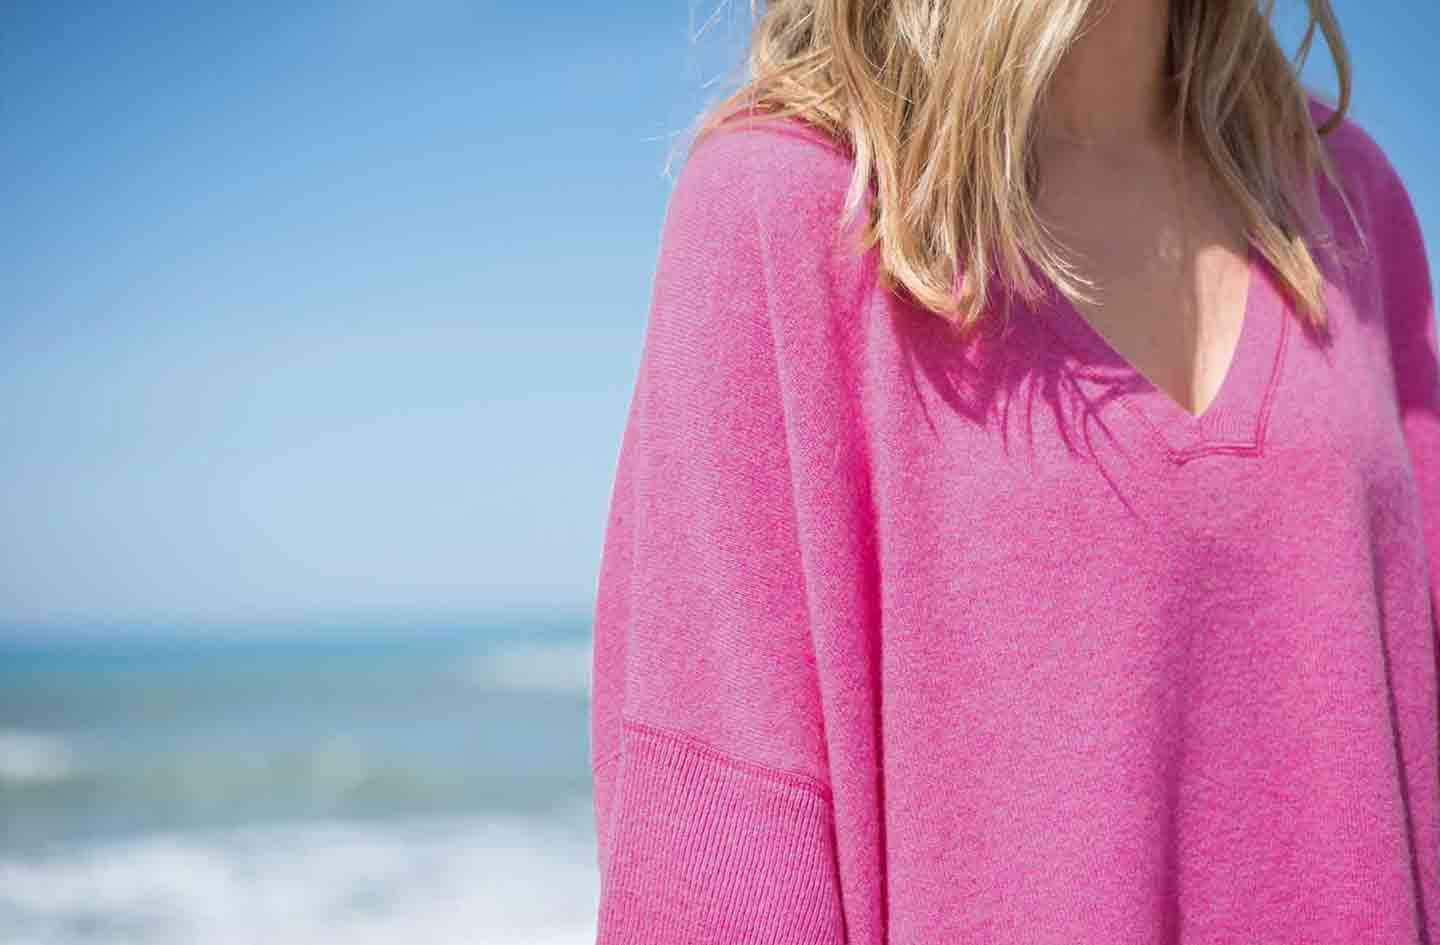 Women-standing-infront-of-the-sea-and-blue-sky-wearing-a-pink-cashmere-kimono-